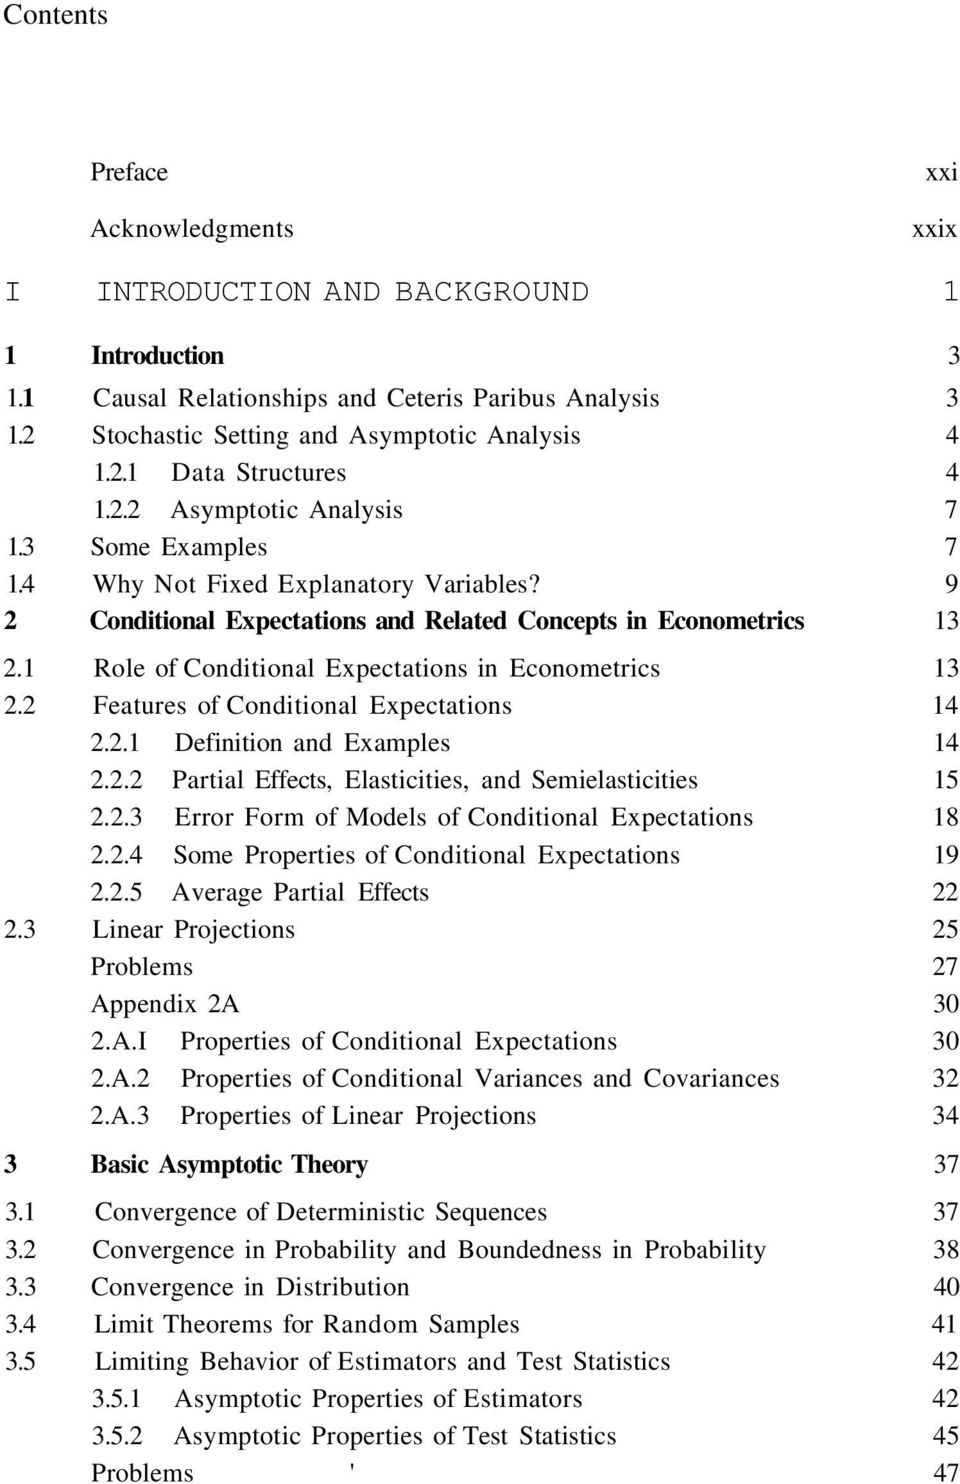 1 Role of Conditional Expectations in Econometrics 13 2.2 Features of Conditional Expectations 14 2.2.1 Definition and Examples 14 2.2.2 Partial Effects, Elasticities, and Semielasticities 15 2.2.3 Error Form of Models of Conditional Expectations 18 2.